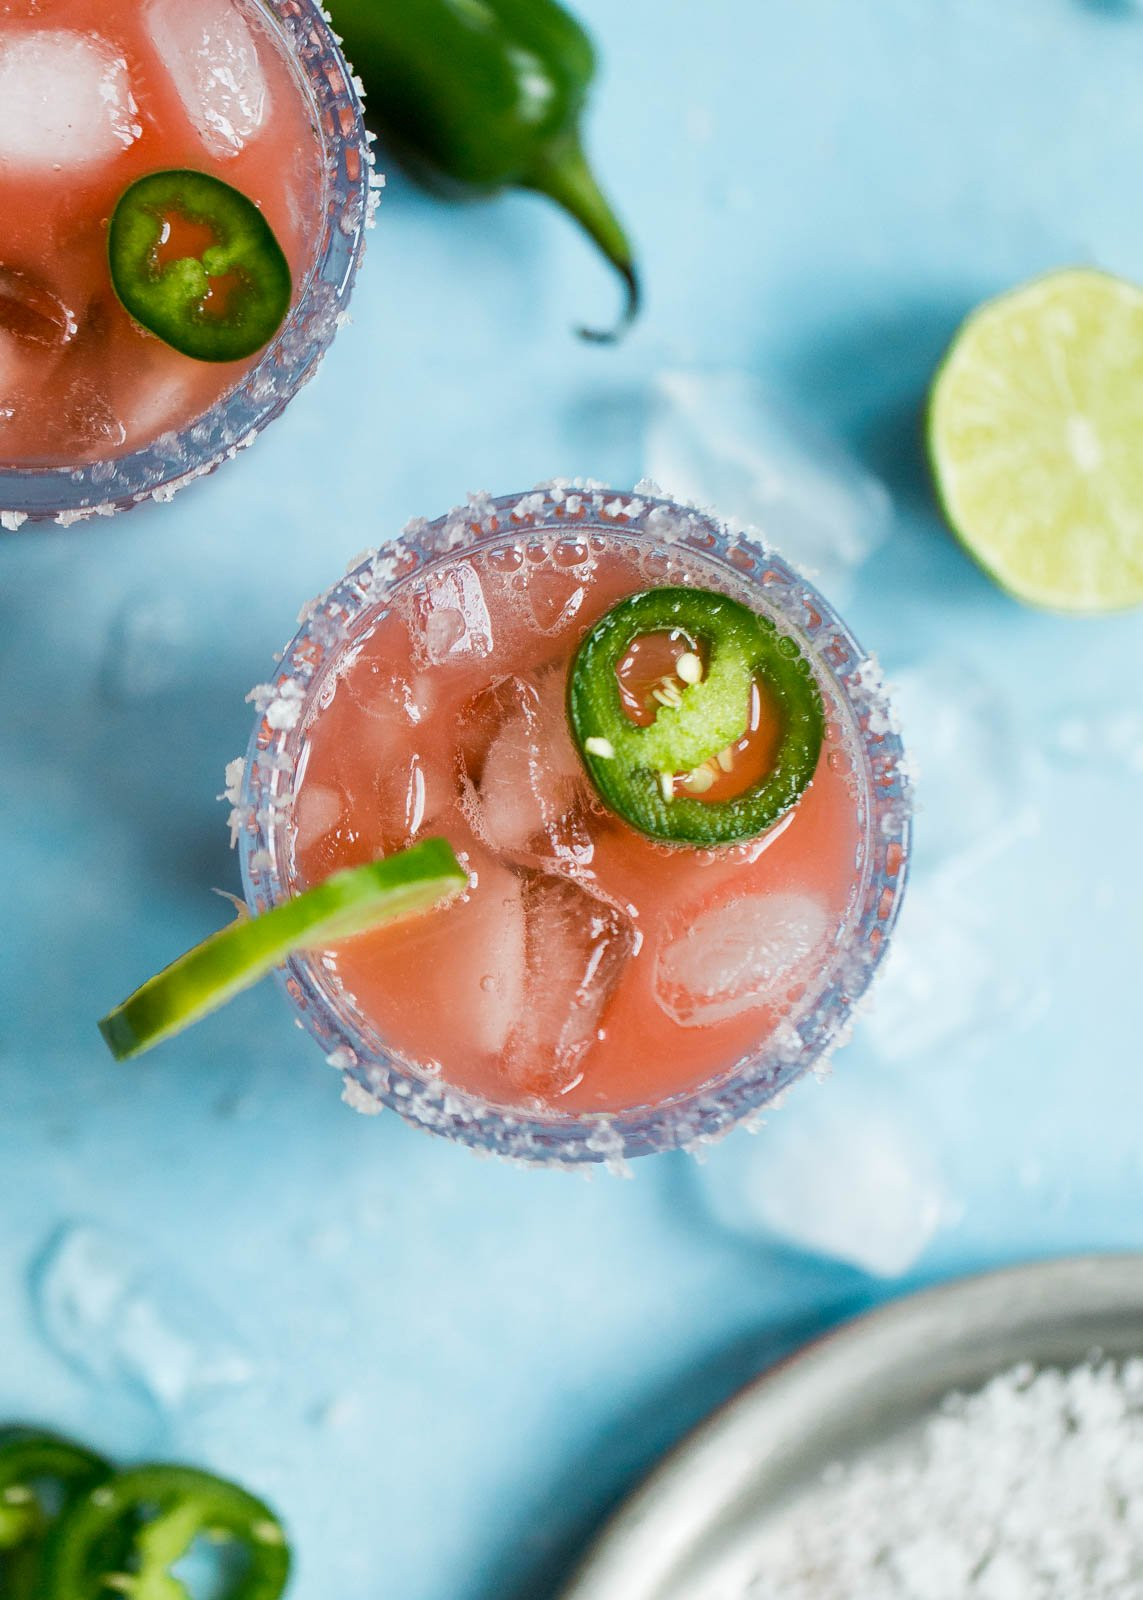 Skinny Jalapeño Watermelon Margaritas in two glasses with jalapeño slices